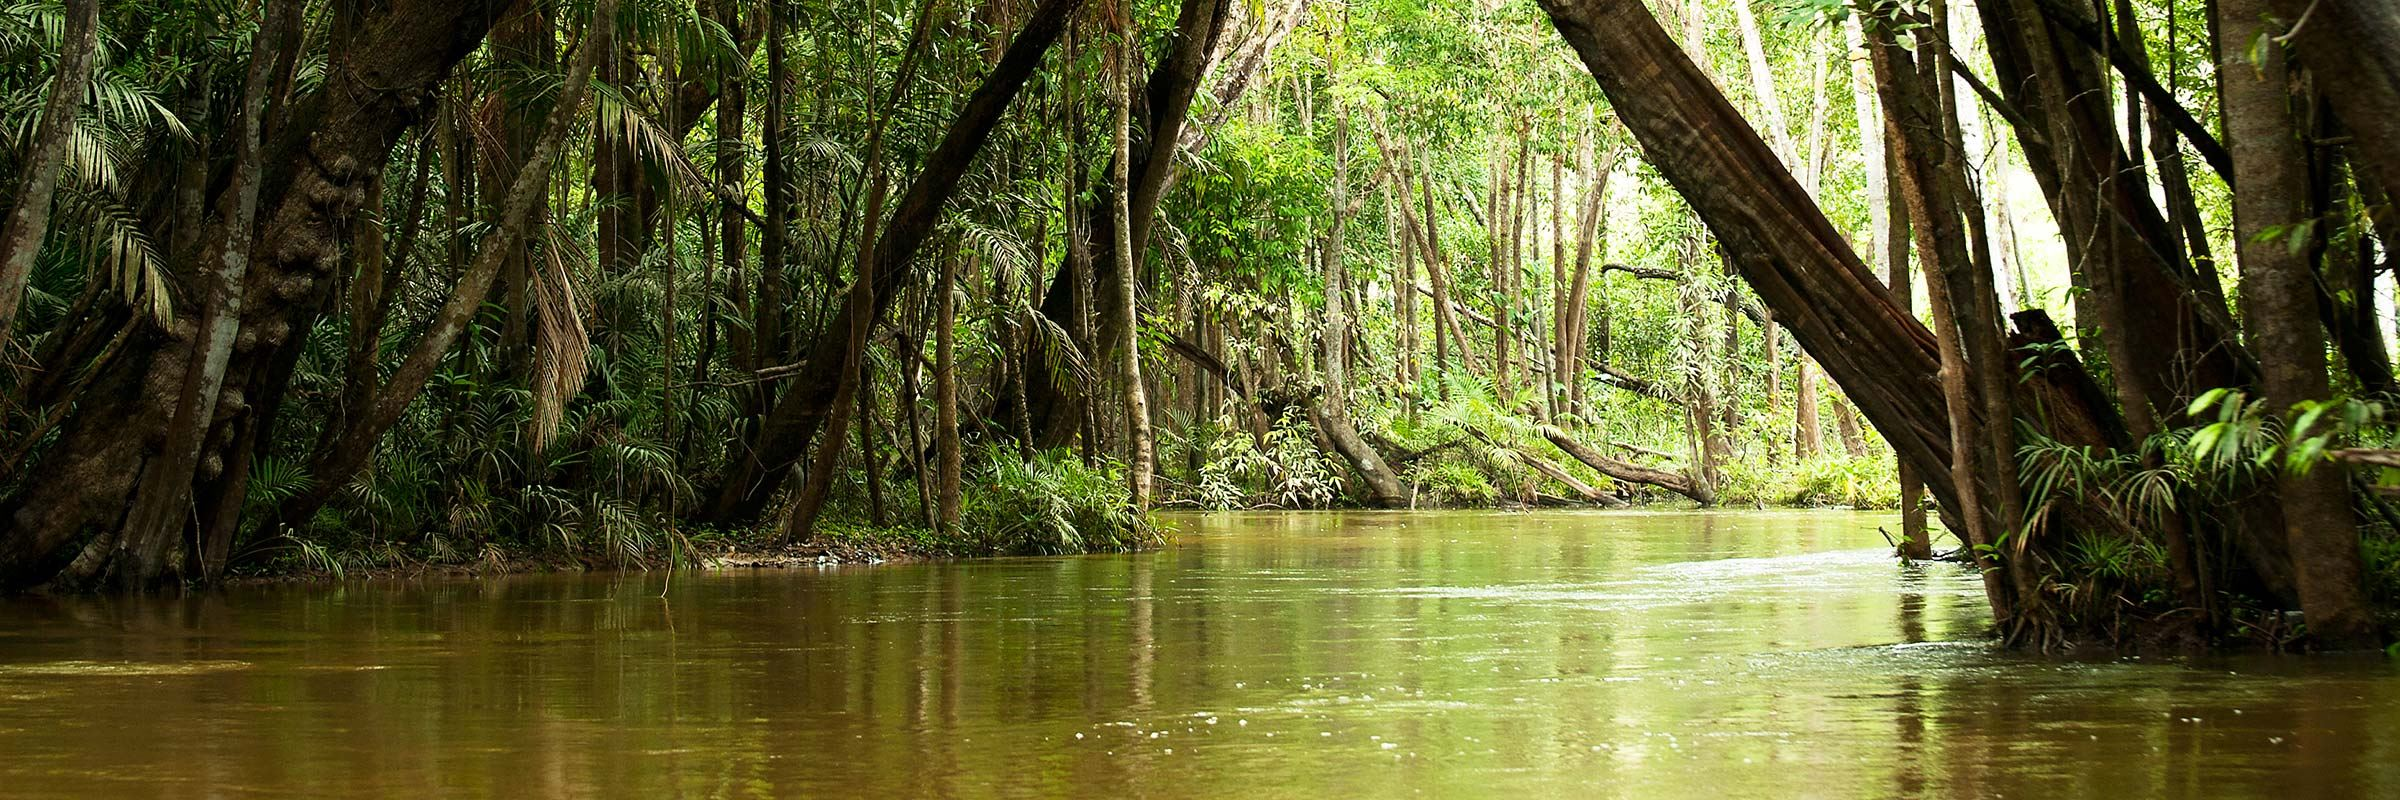 Where To Go In The Amazon Travel Guide Audley Travel